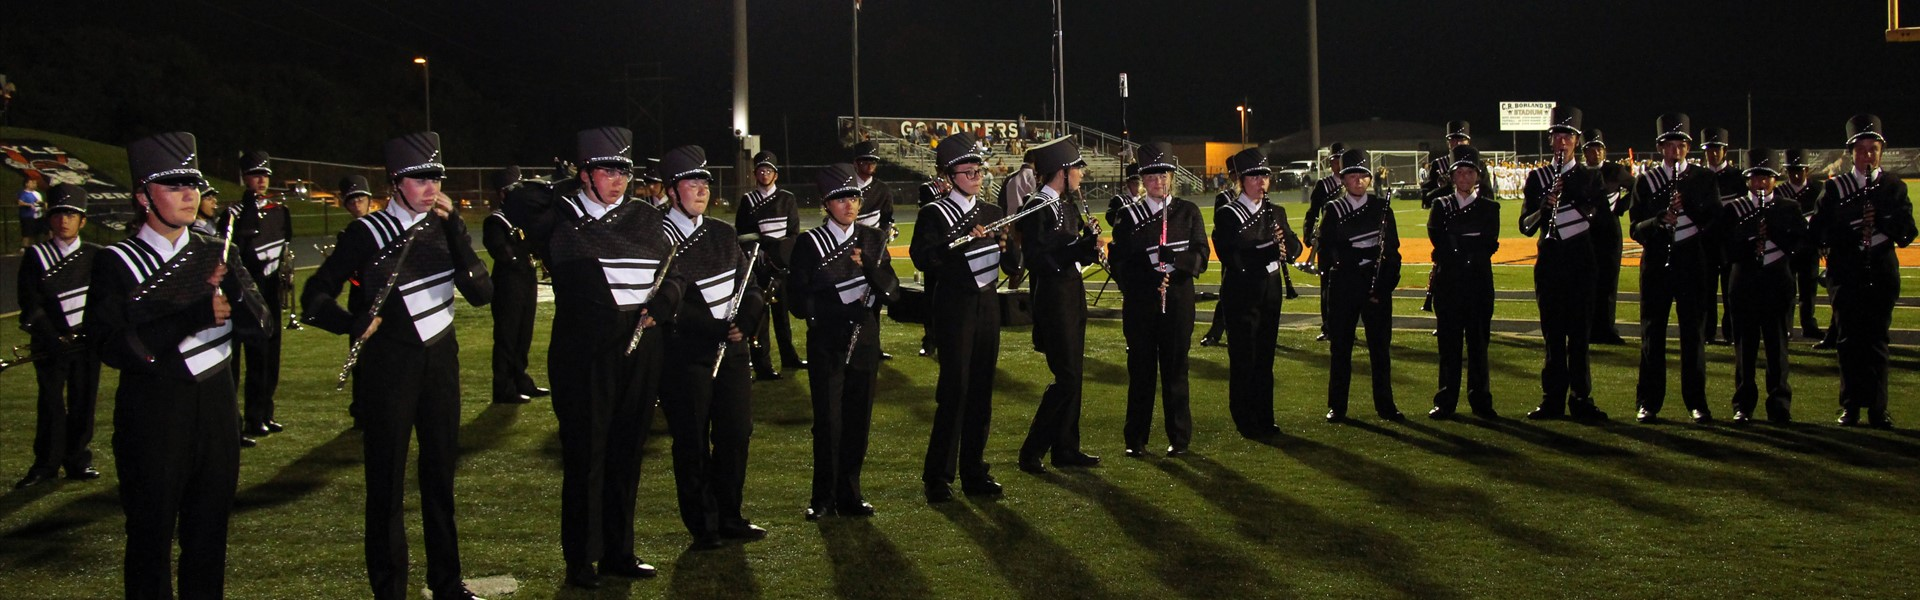 Ryle Band